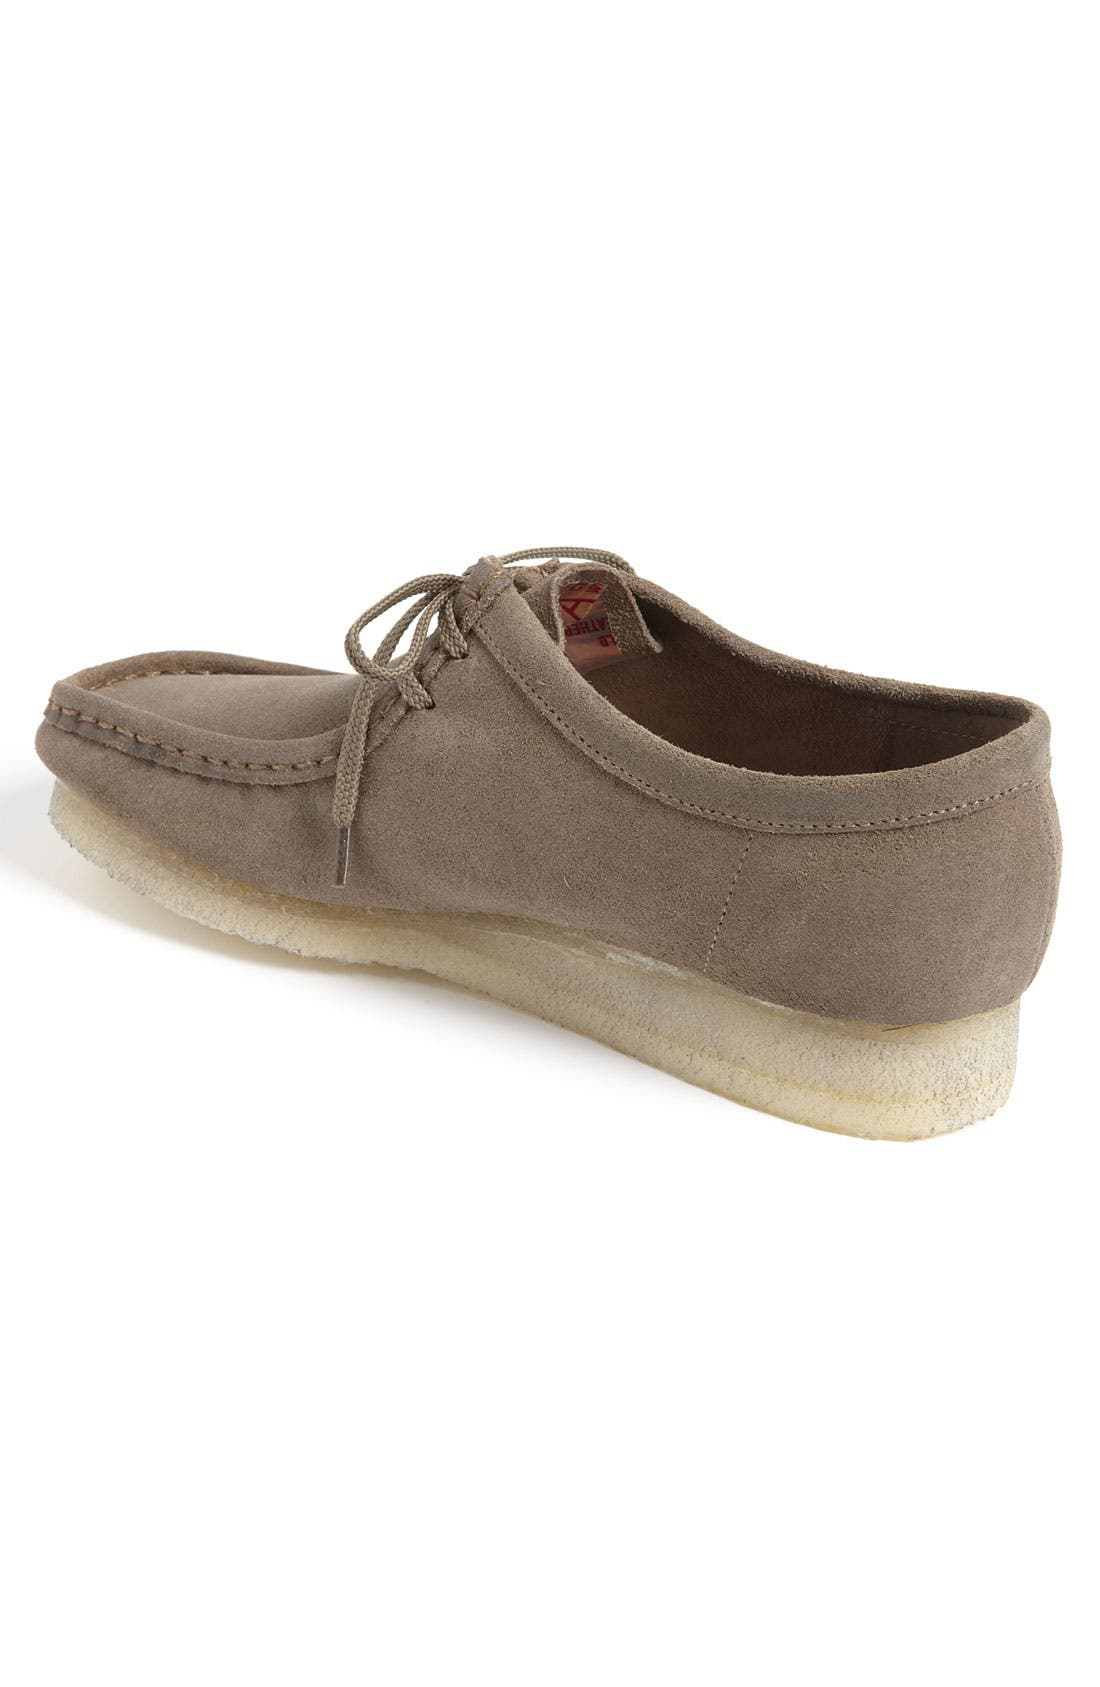 'Wallabee' Moc Toe Derby (Online Only),                             Alternate thumbnail 62, color,